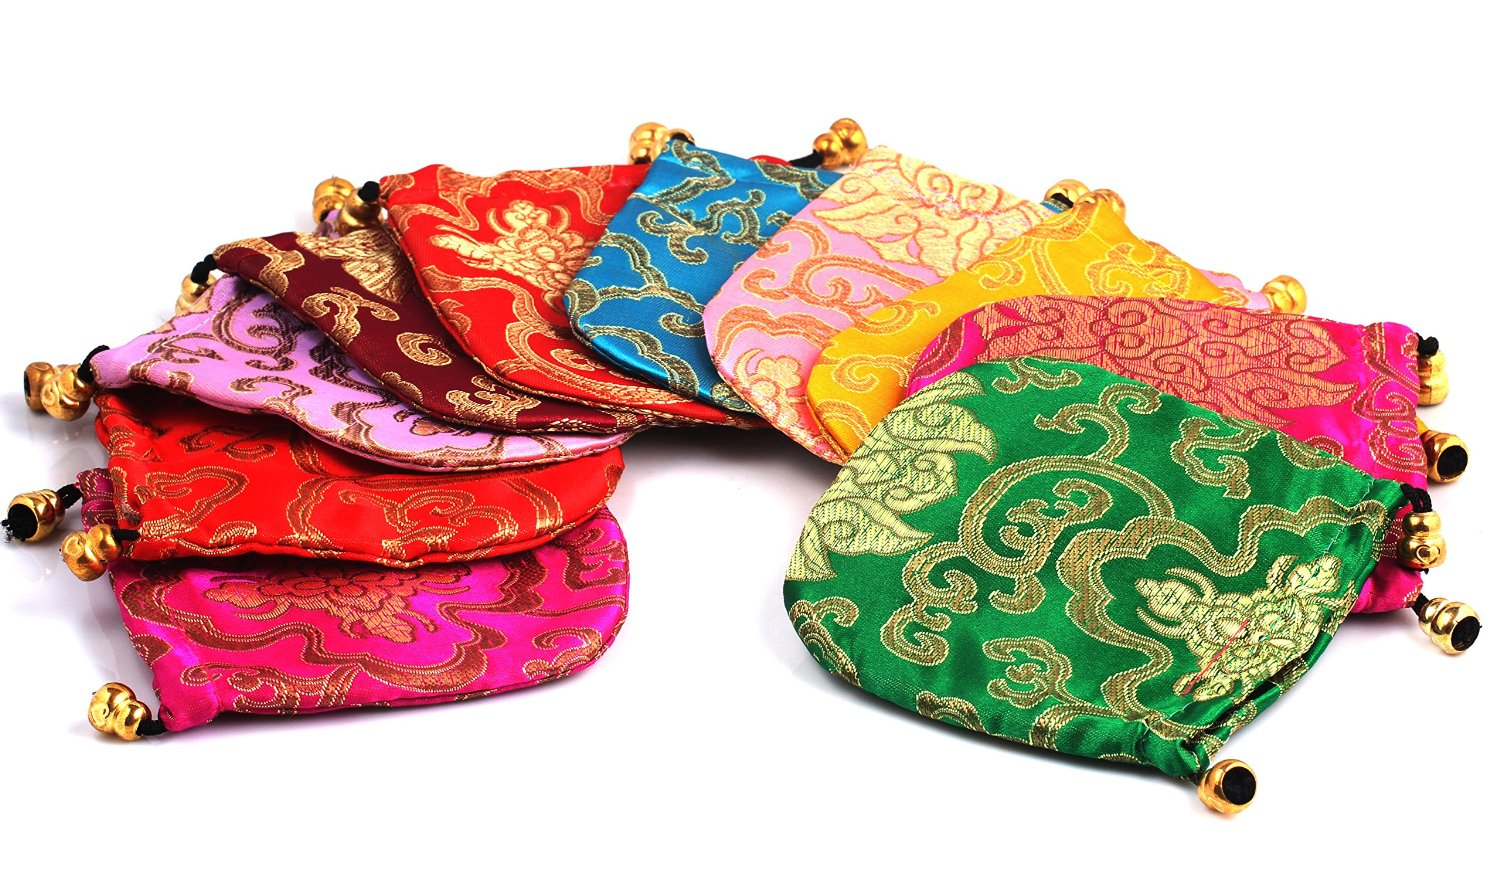 Indian Wedding Gift Bags For Guests : Best Ideas for Indian Bridal Shower Return Gifts under 15USD